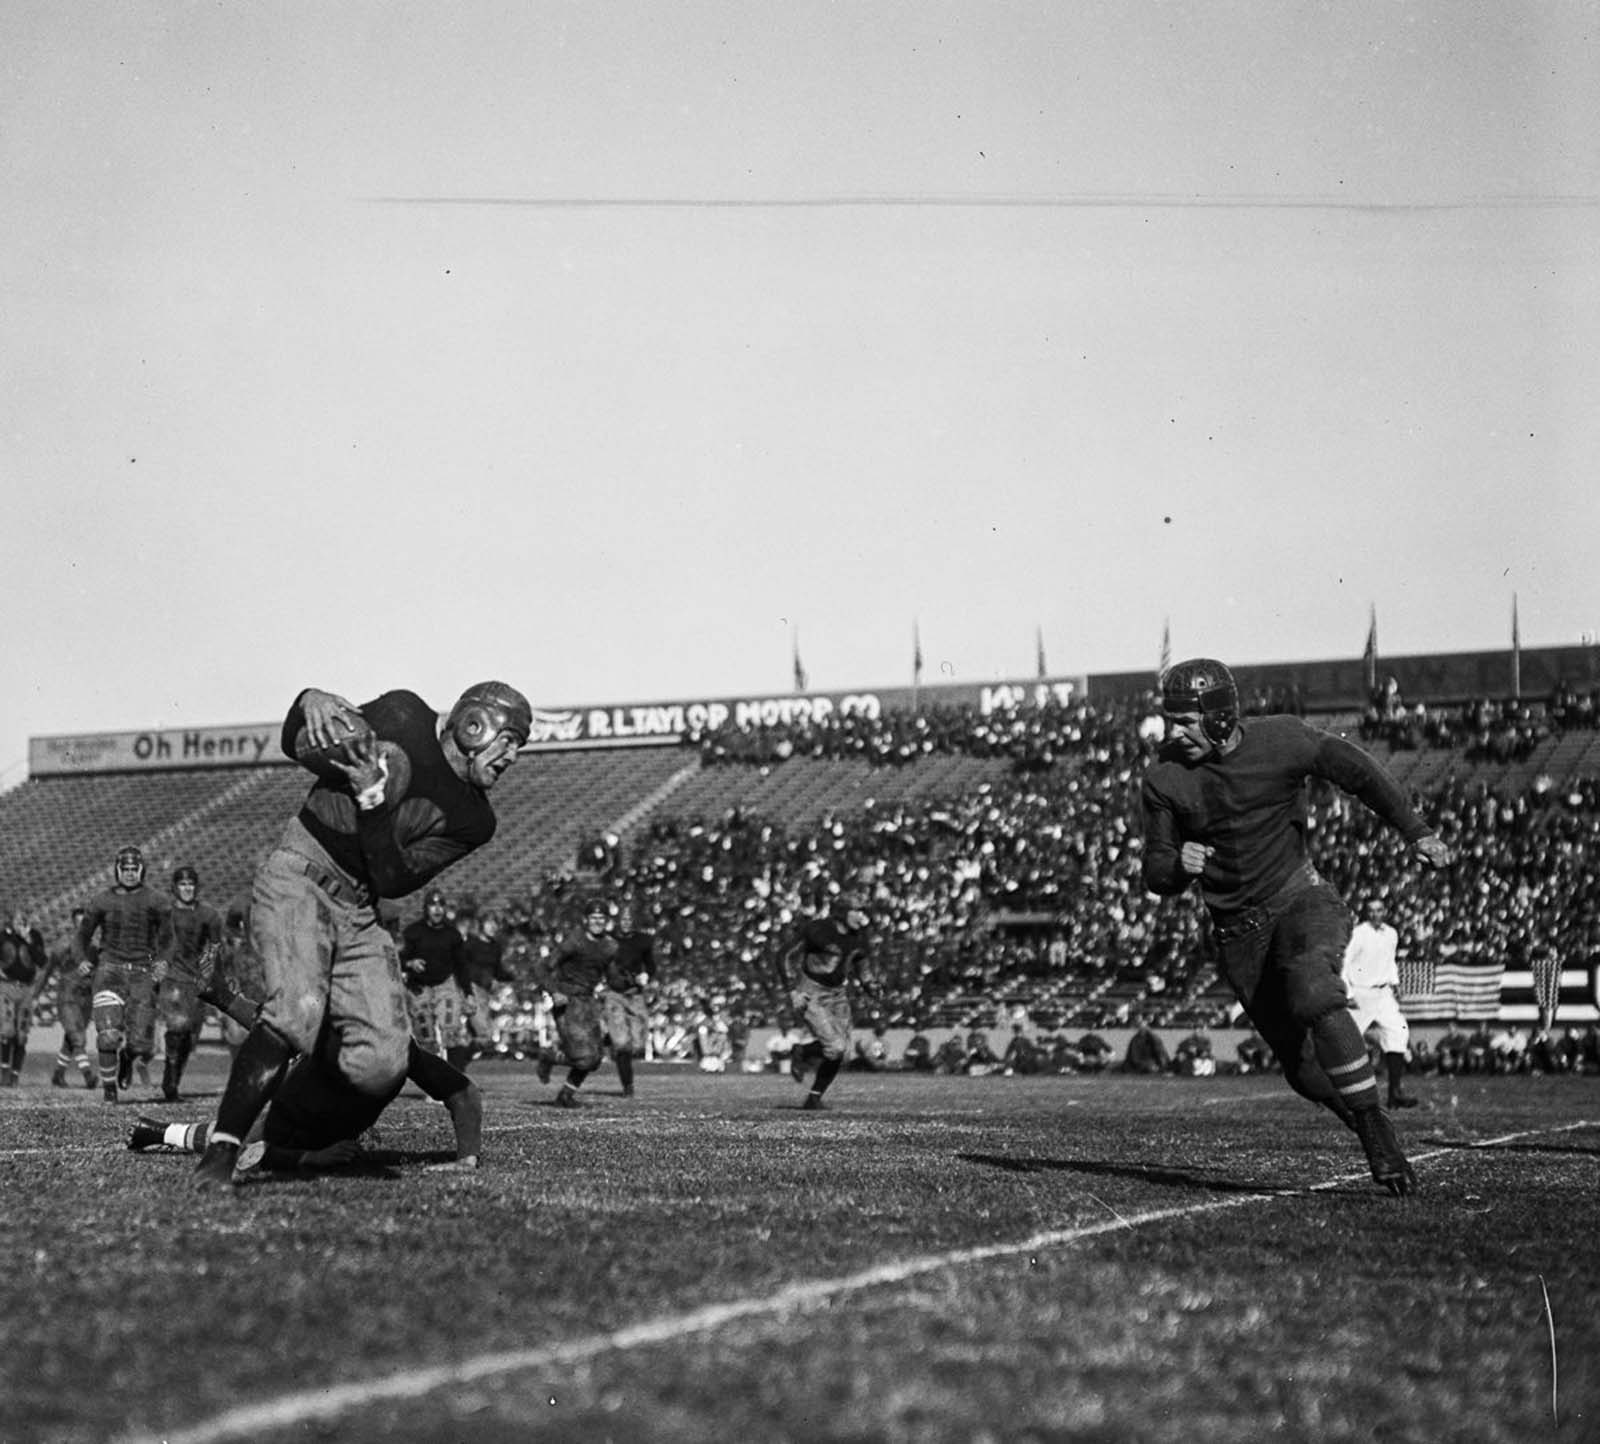 The popularity of college football grew as it became the dominant version of the sport in the United States for the first half of the 20th century.